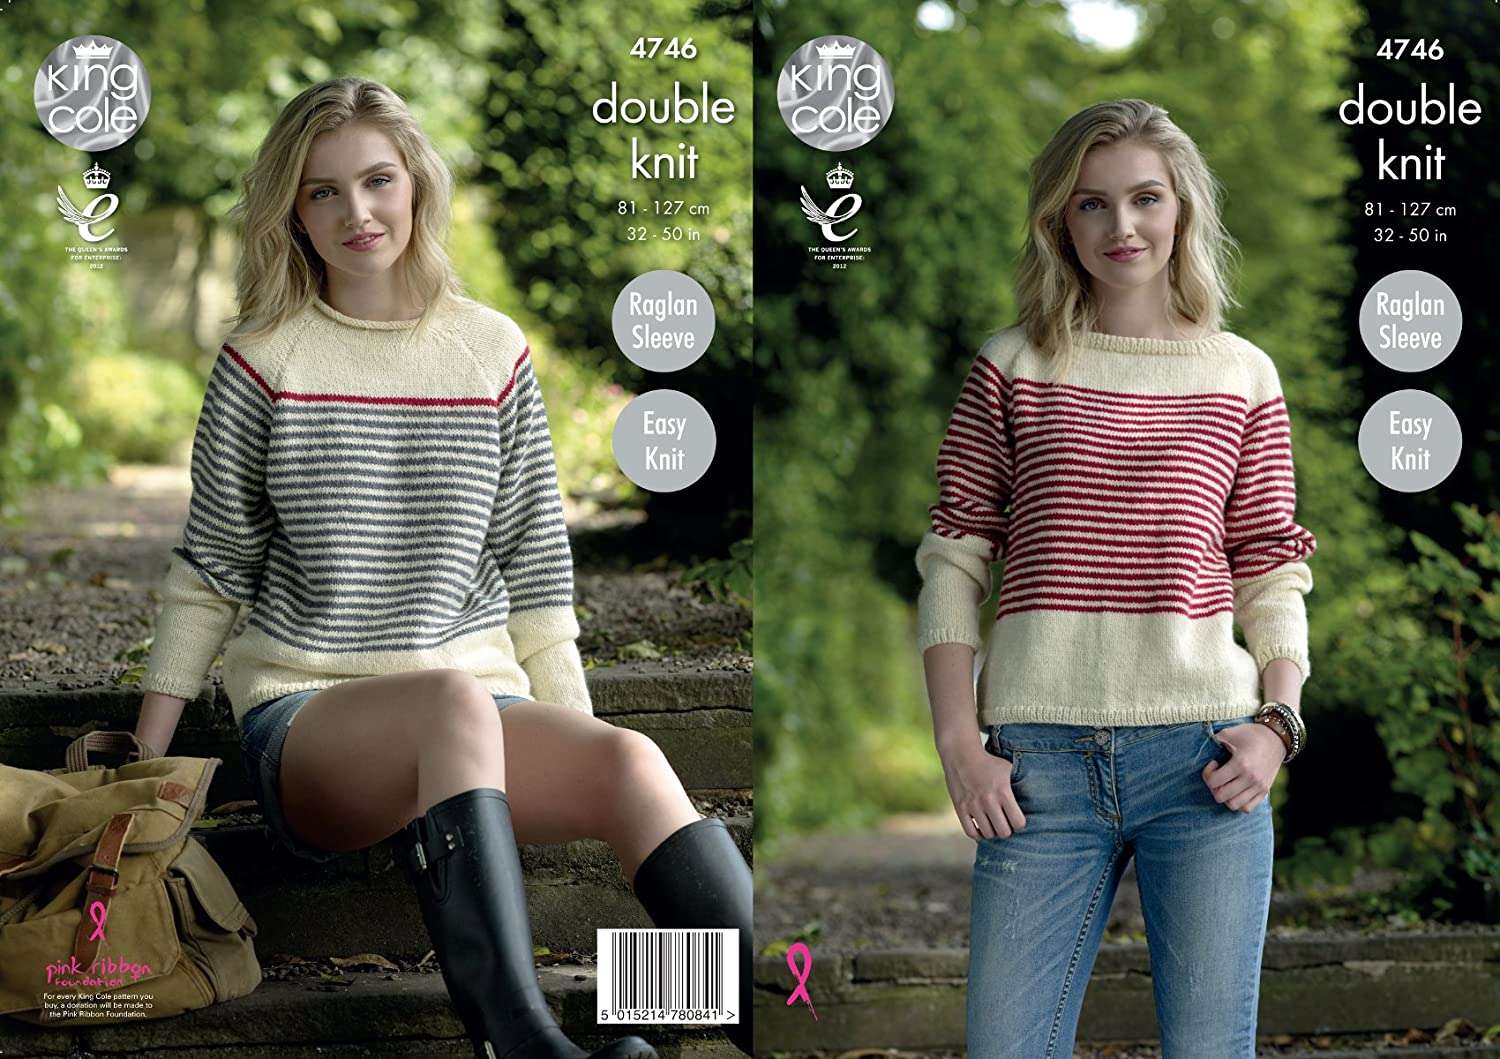 dd5ab09a2a37 Amazon.com  King Cole Ladies Double Knitting Pattern Womens Easy Knit High  or Boat Neck Sweaters (4746)  Home   Kitchen